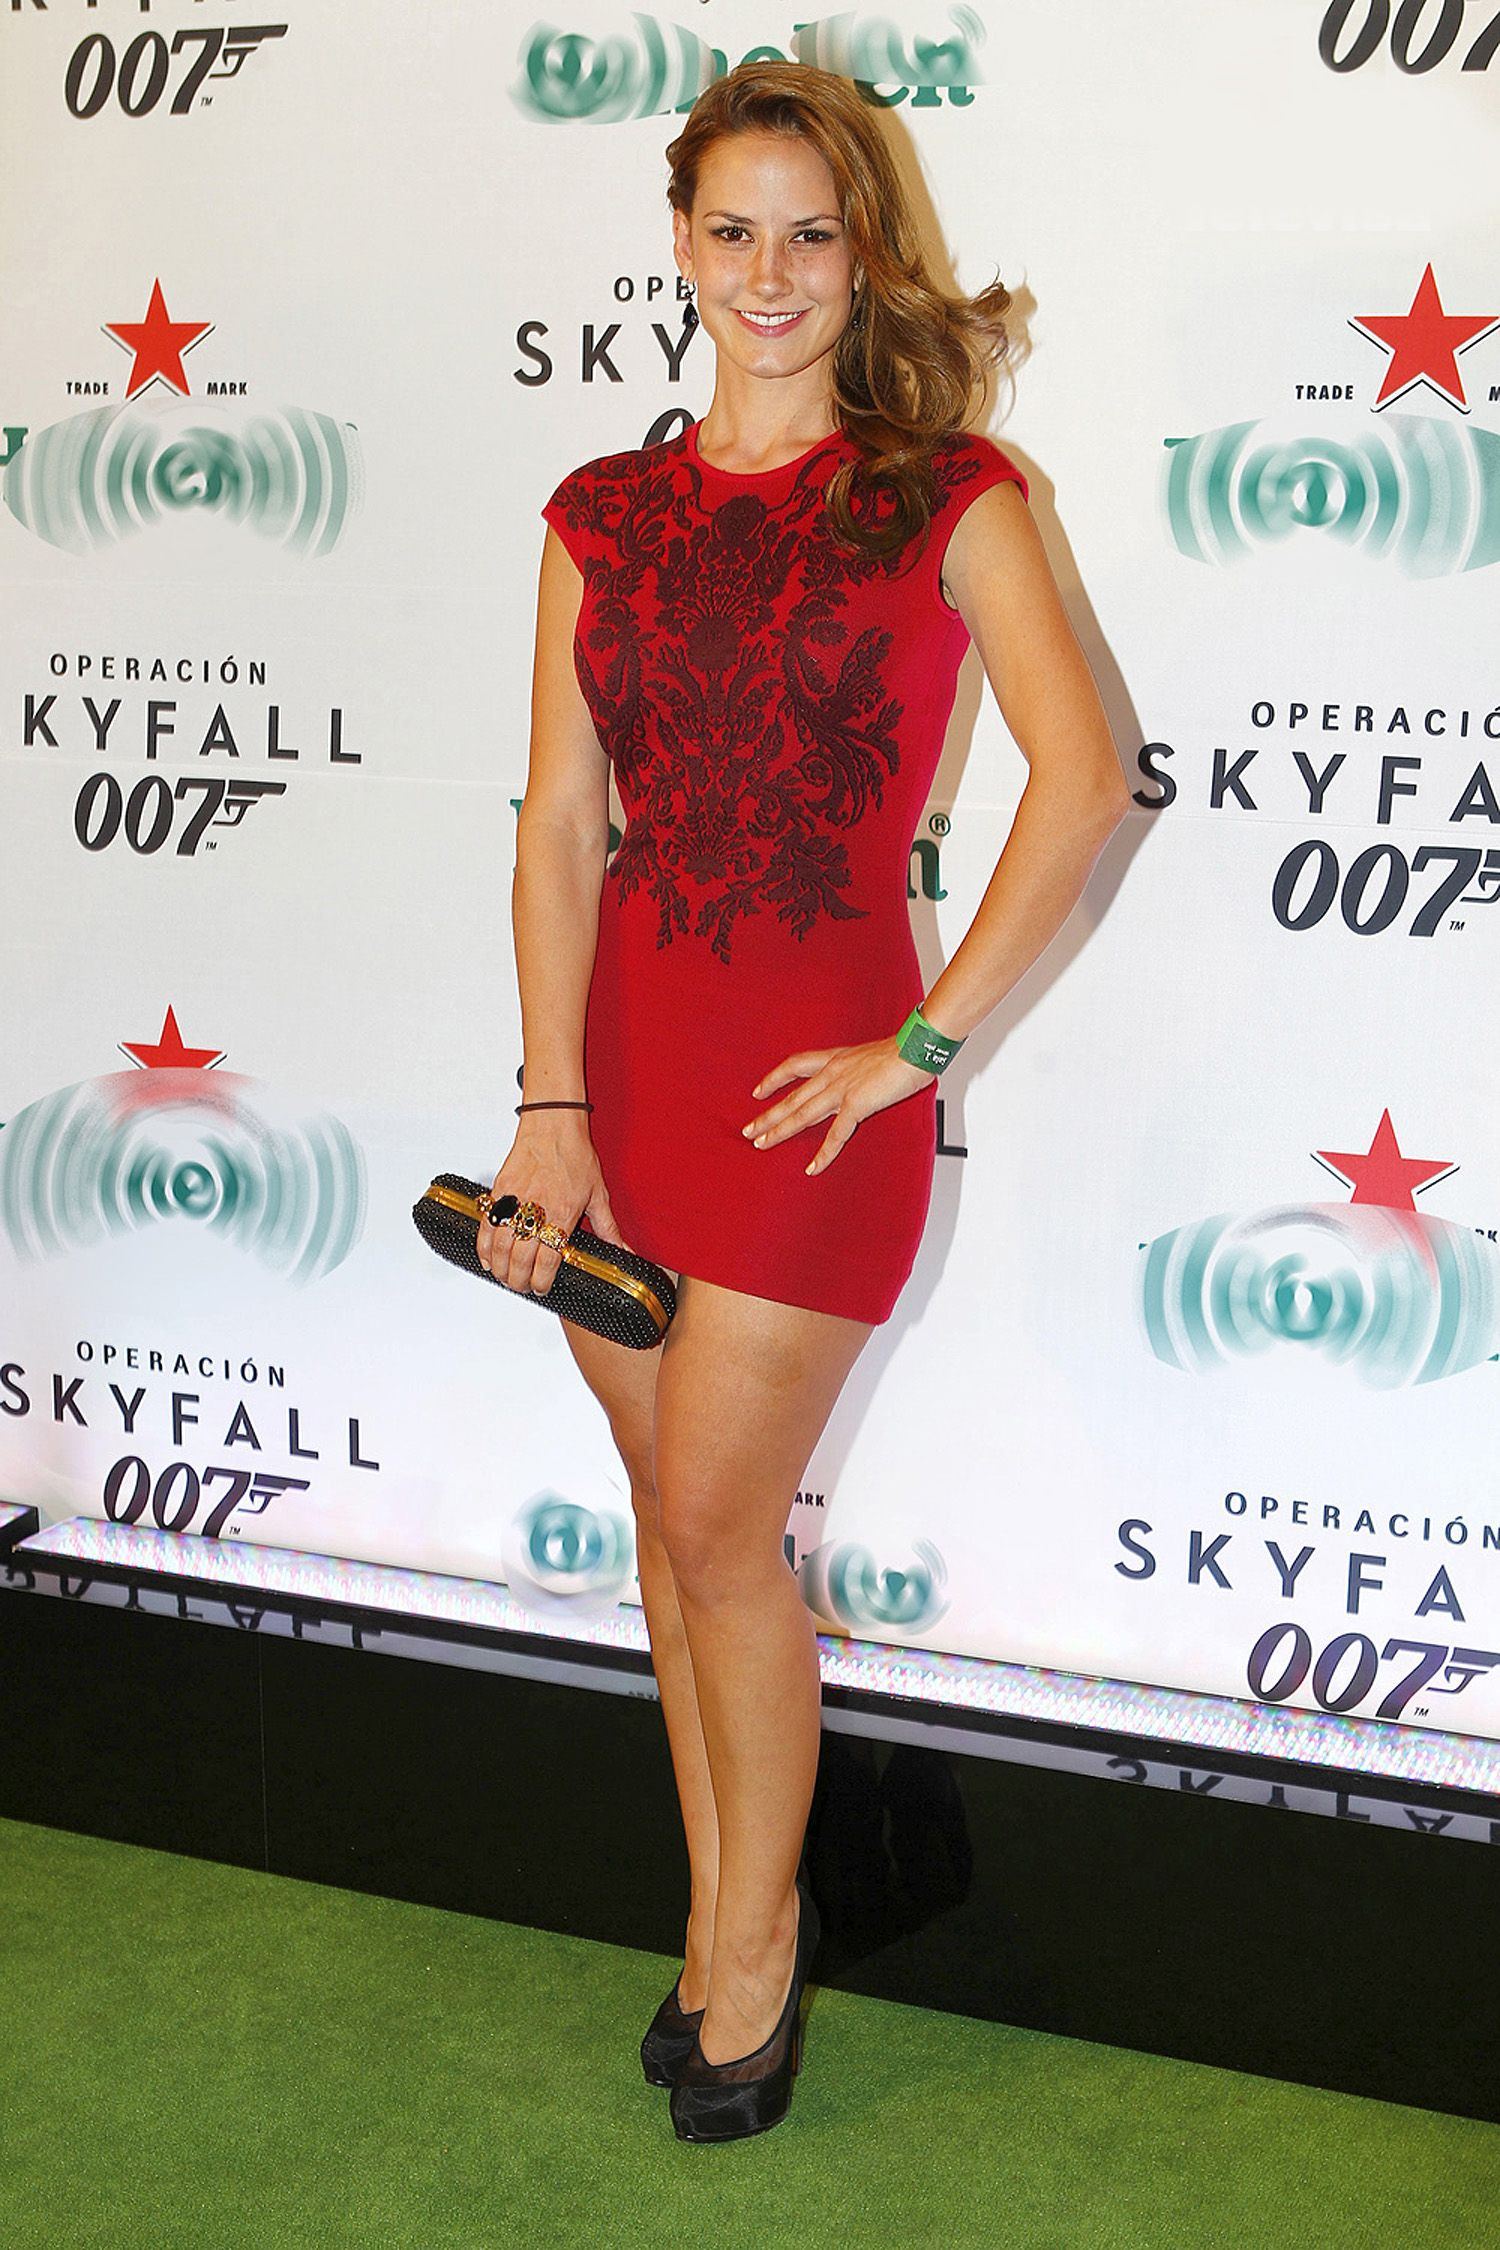 Altair Jarabo Naked altair jarabo #altairjarabo   actresses - of mexico   formal